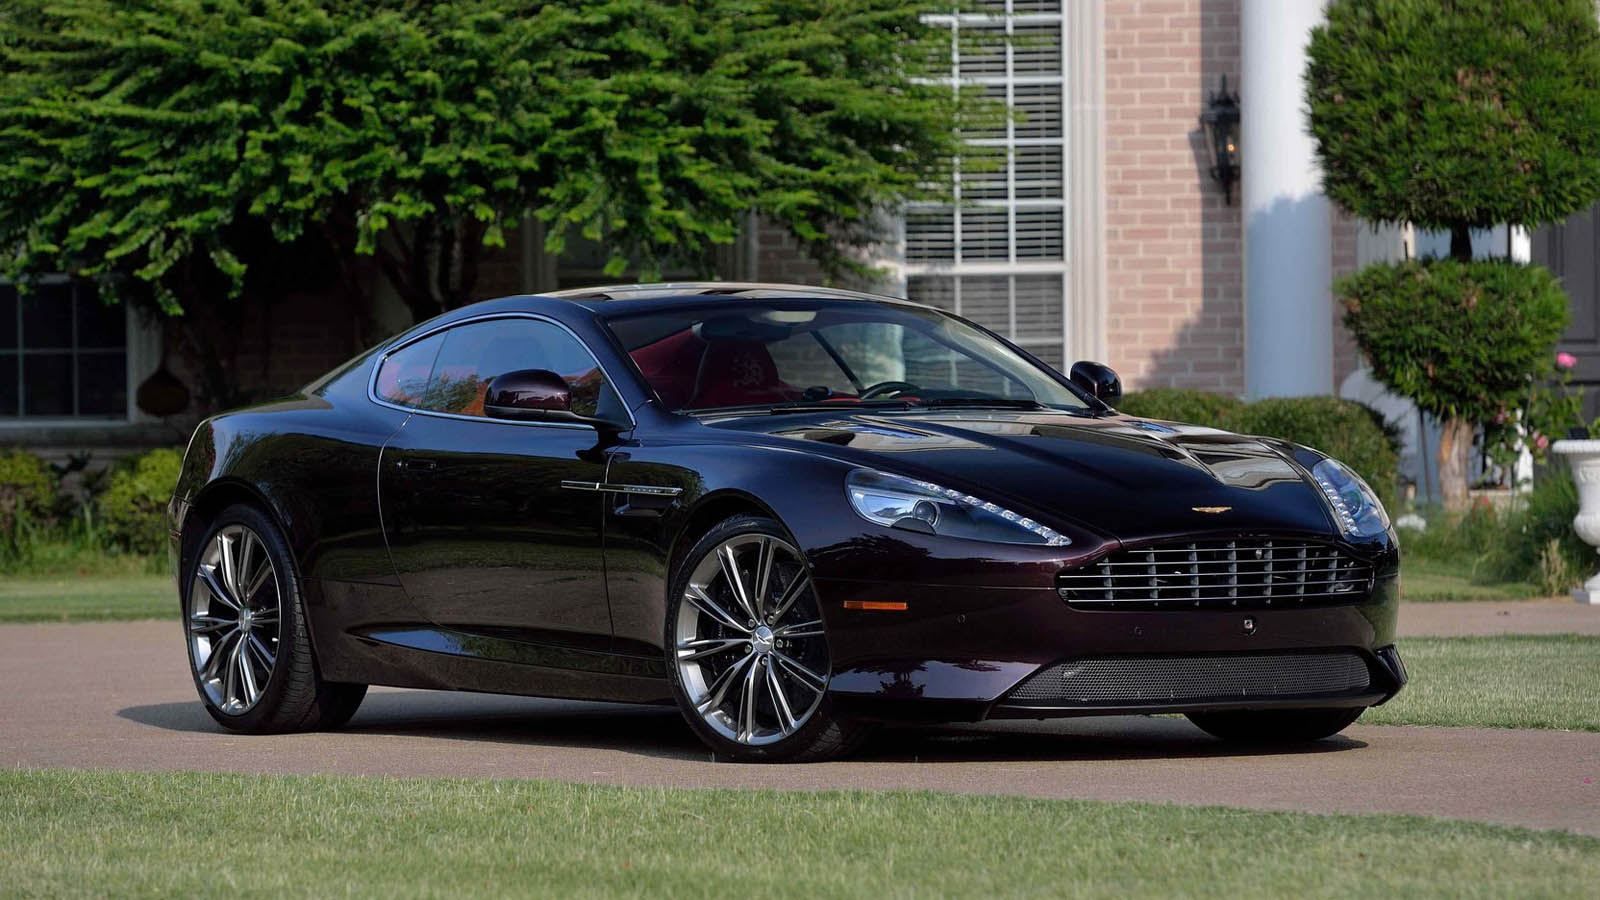 Aston_Martin_Virage_Dragon_88_Edition_05